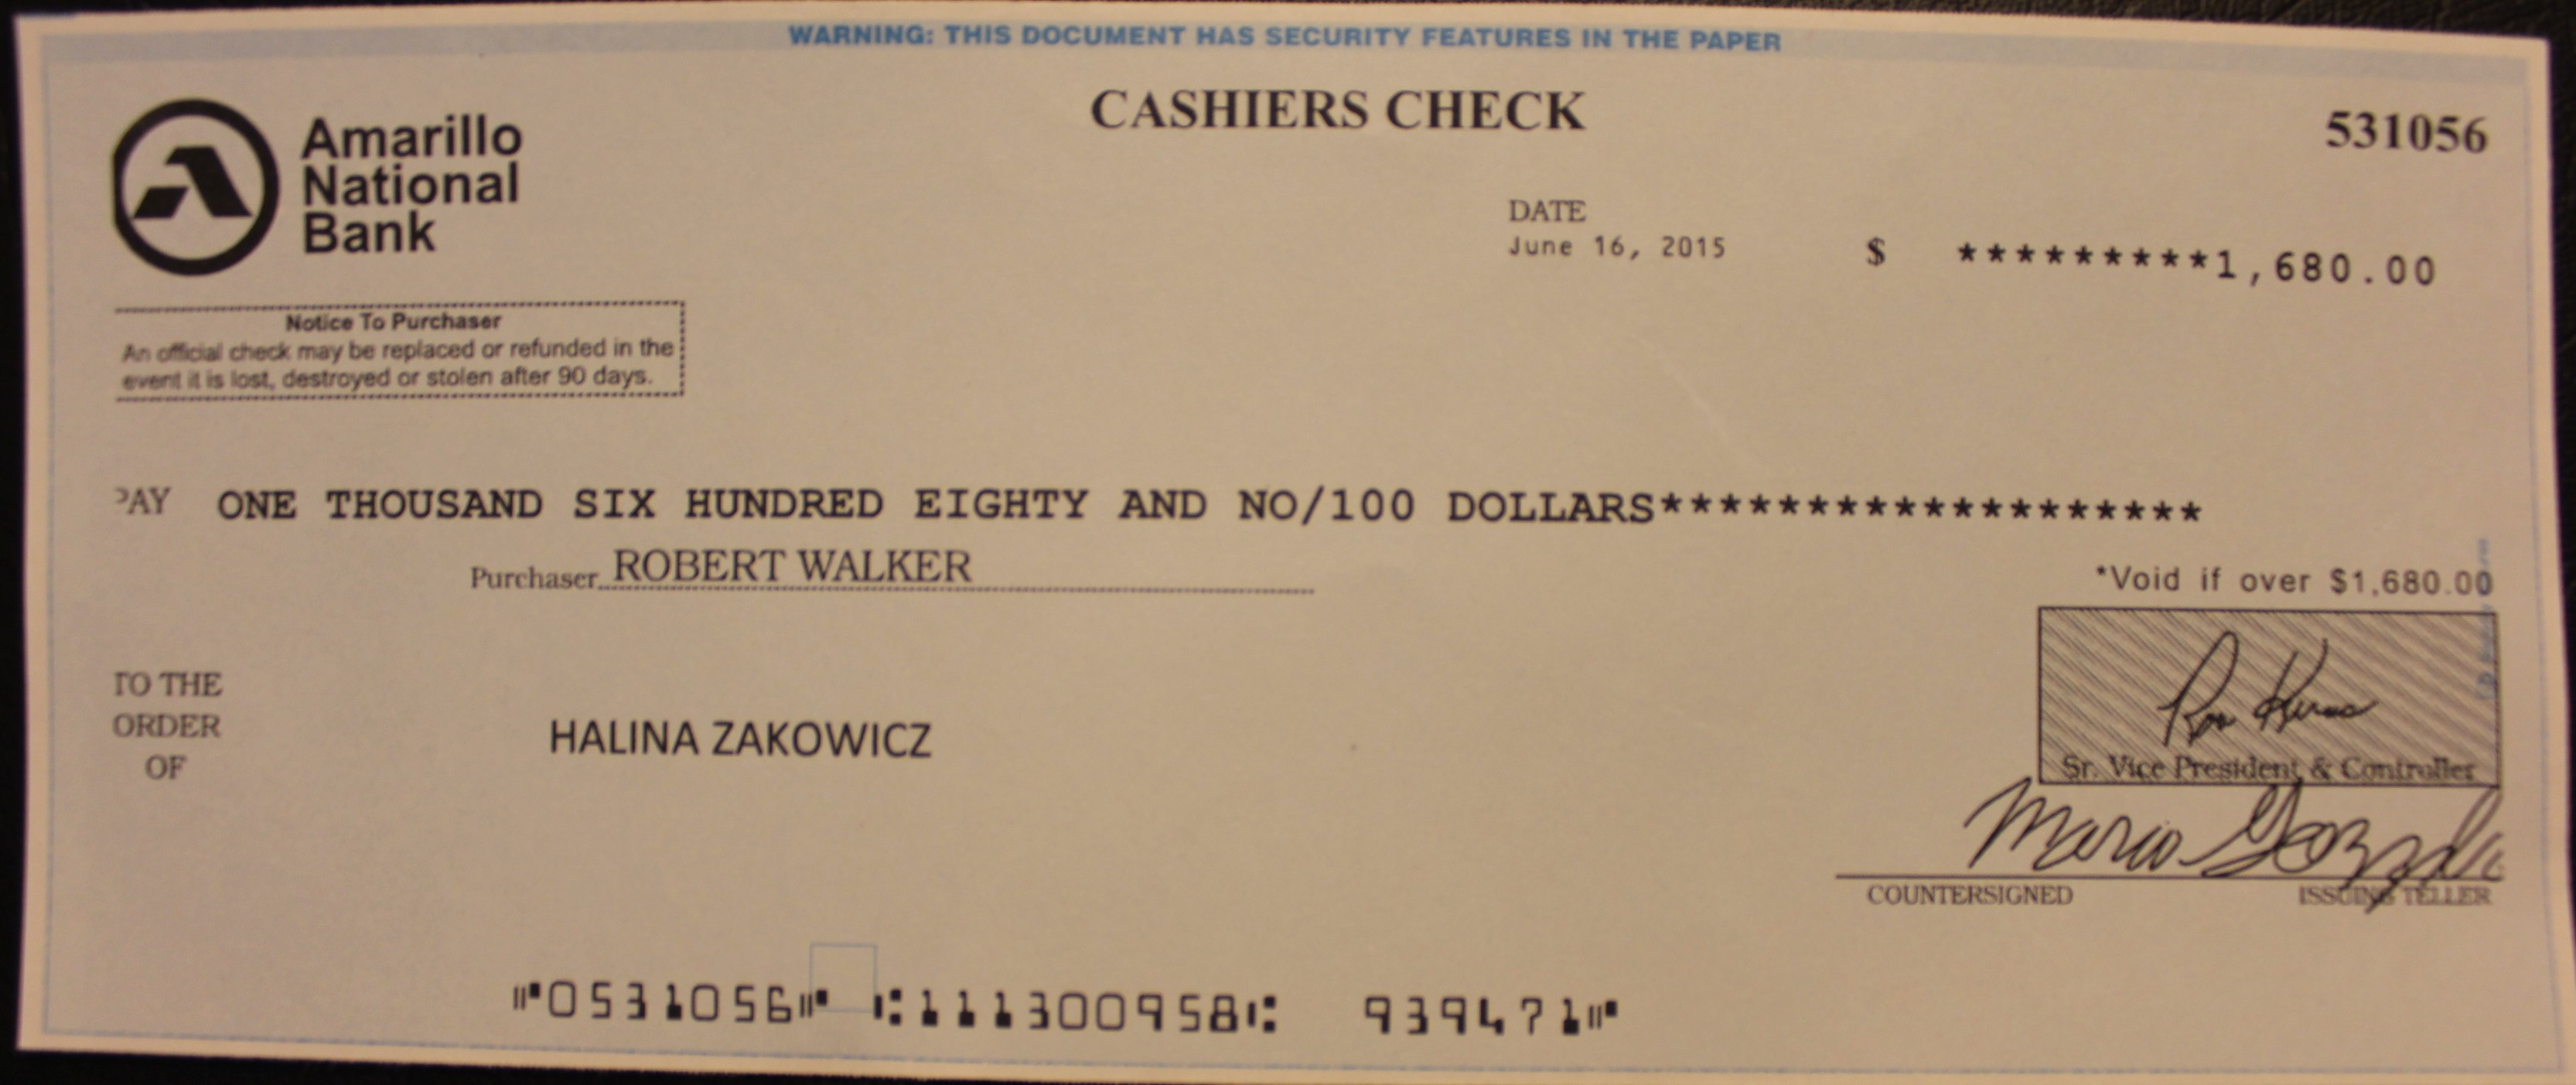 Beware Of These Mystery Shopping Fake Check Scams Ivetriedthat Walmart Wiring Money Hours Img 3691